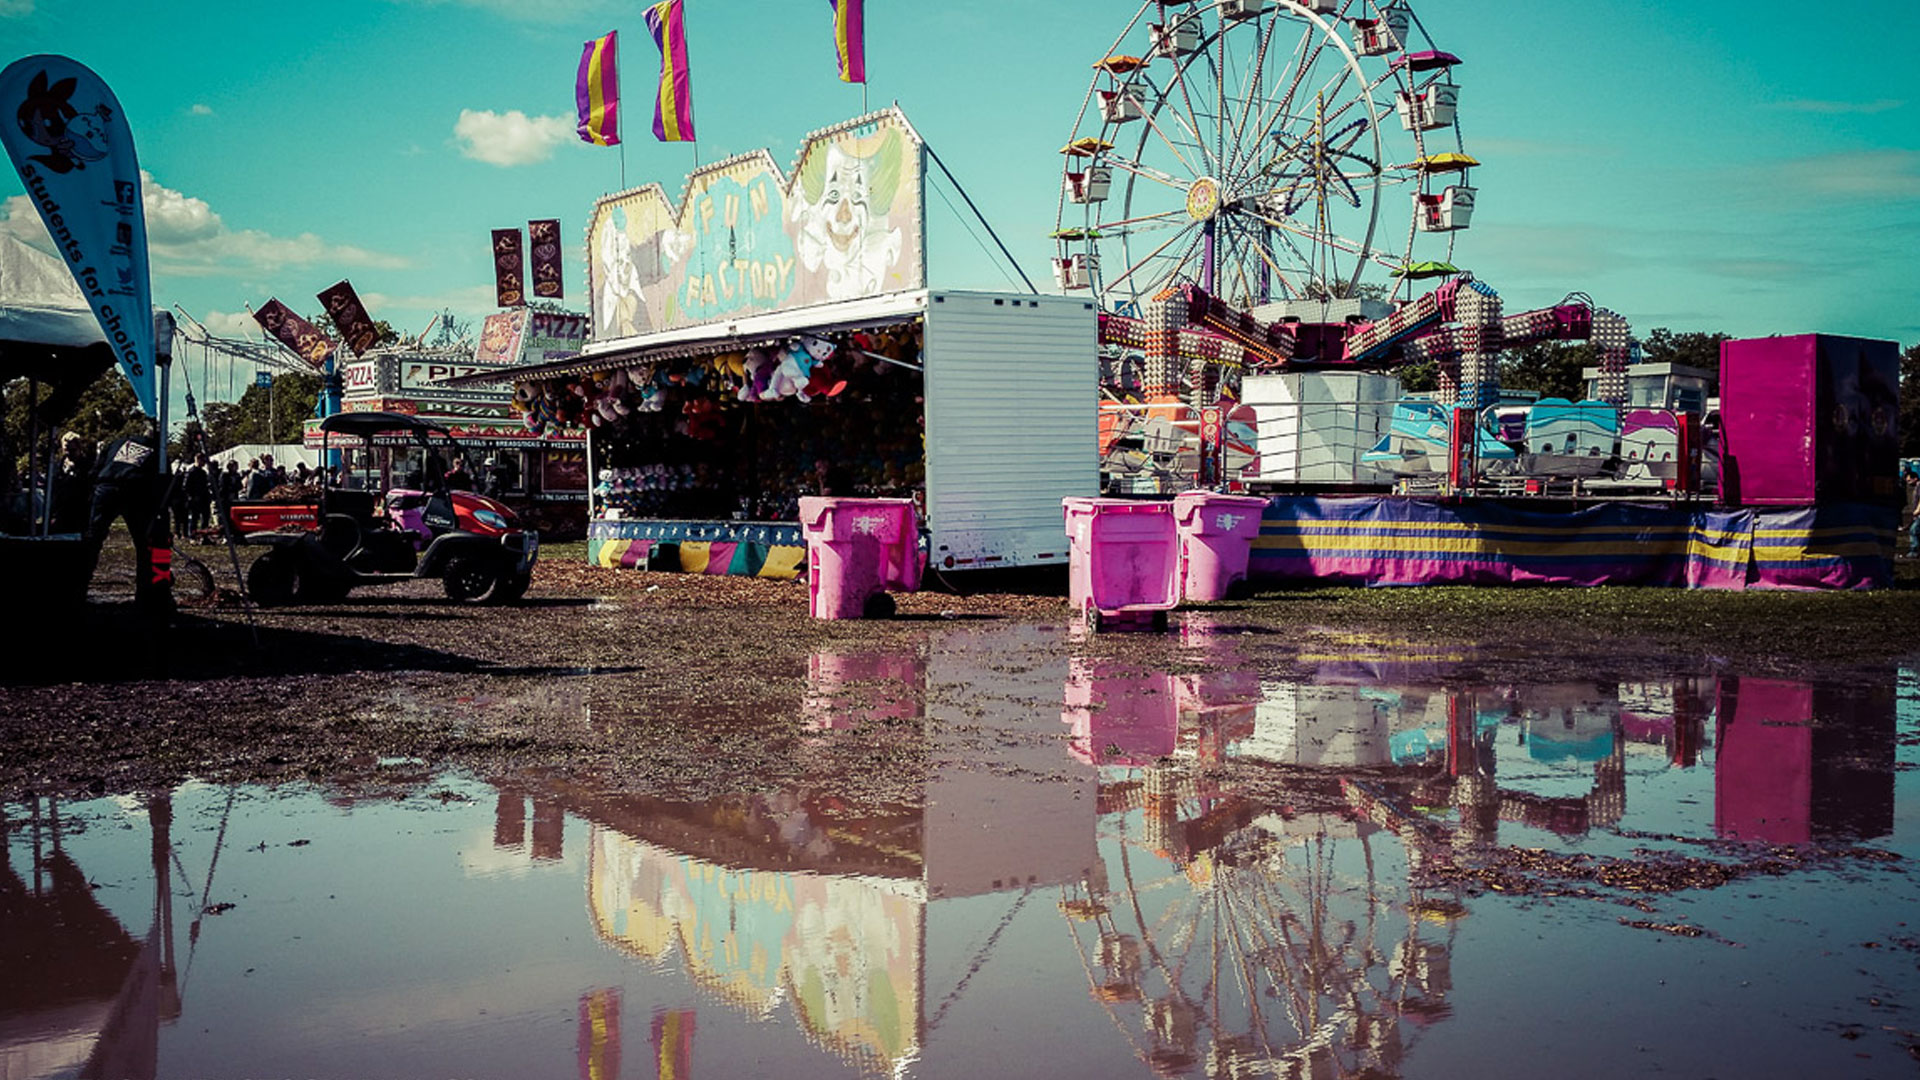 photographing carnivals fairs festivals